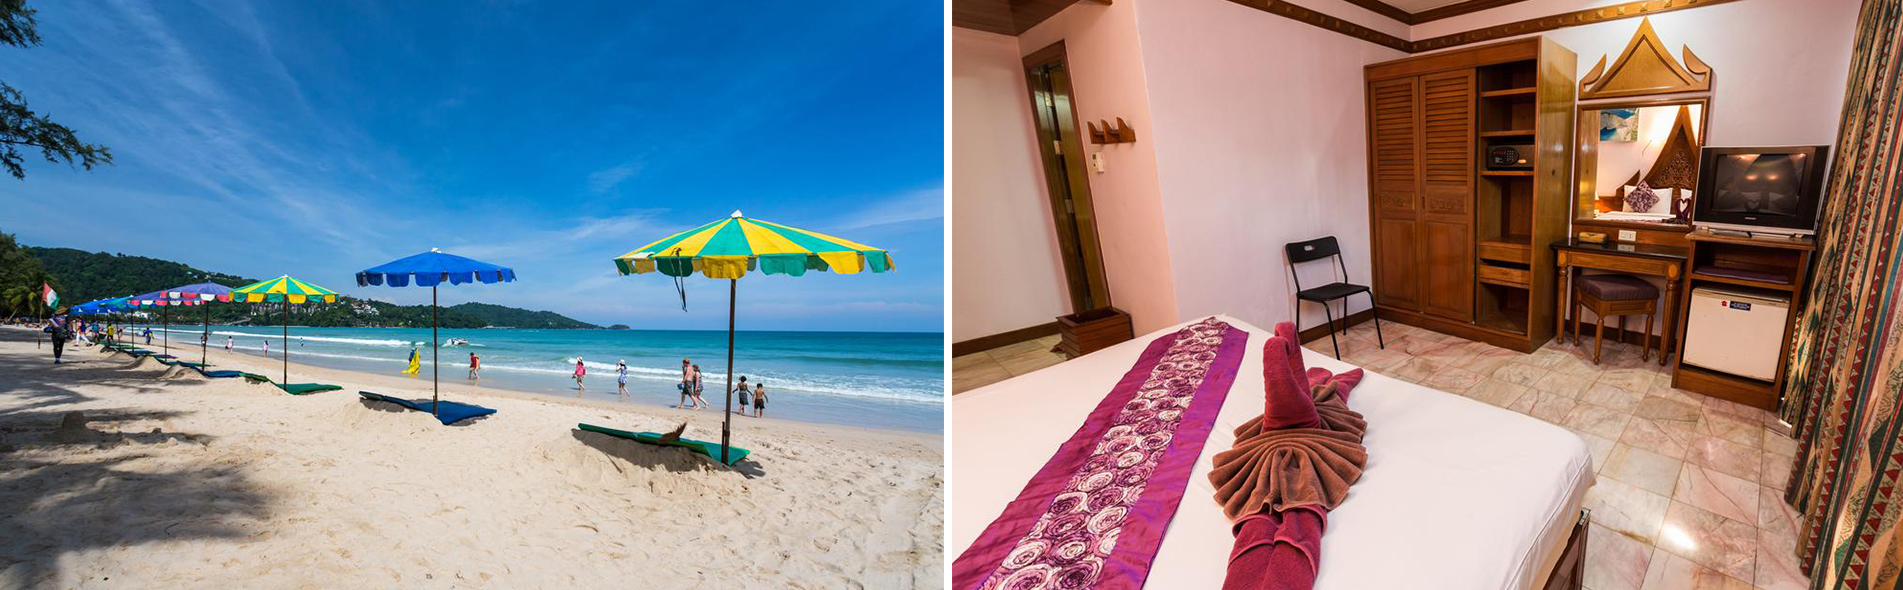 Hotel Patong Beach Bed &  Breakfast